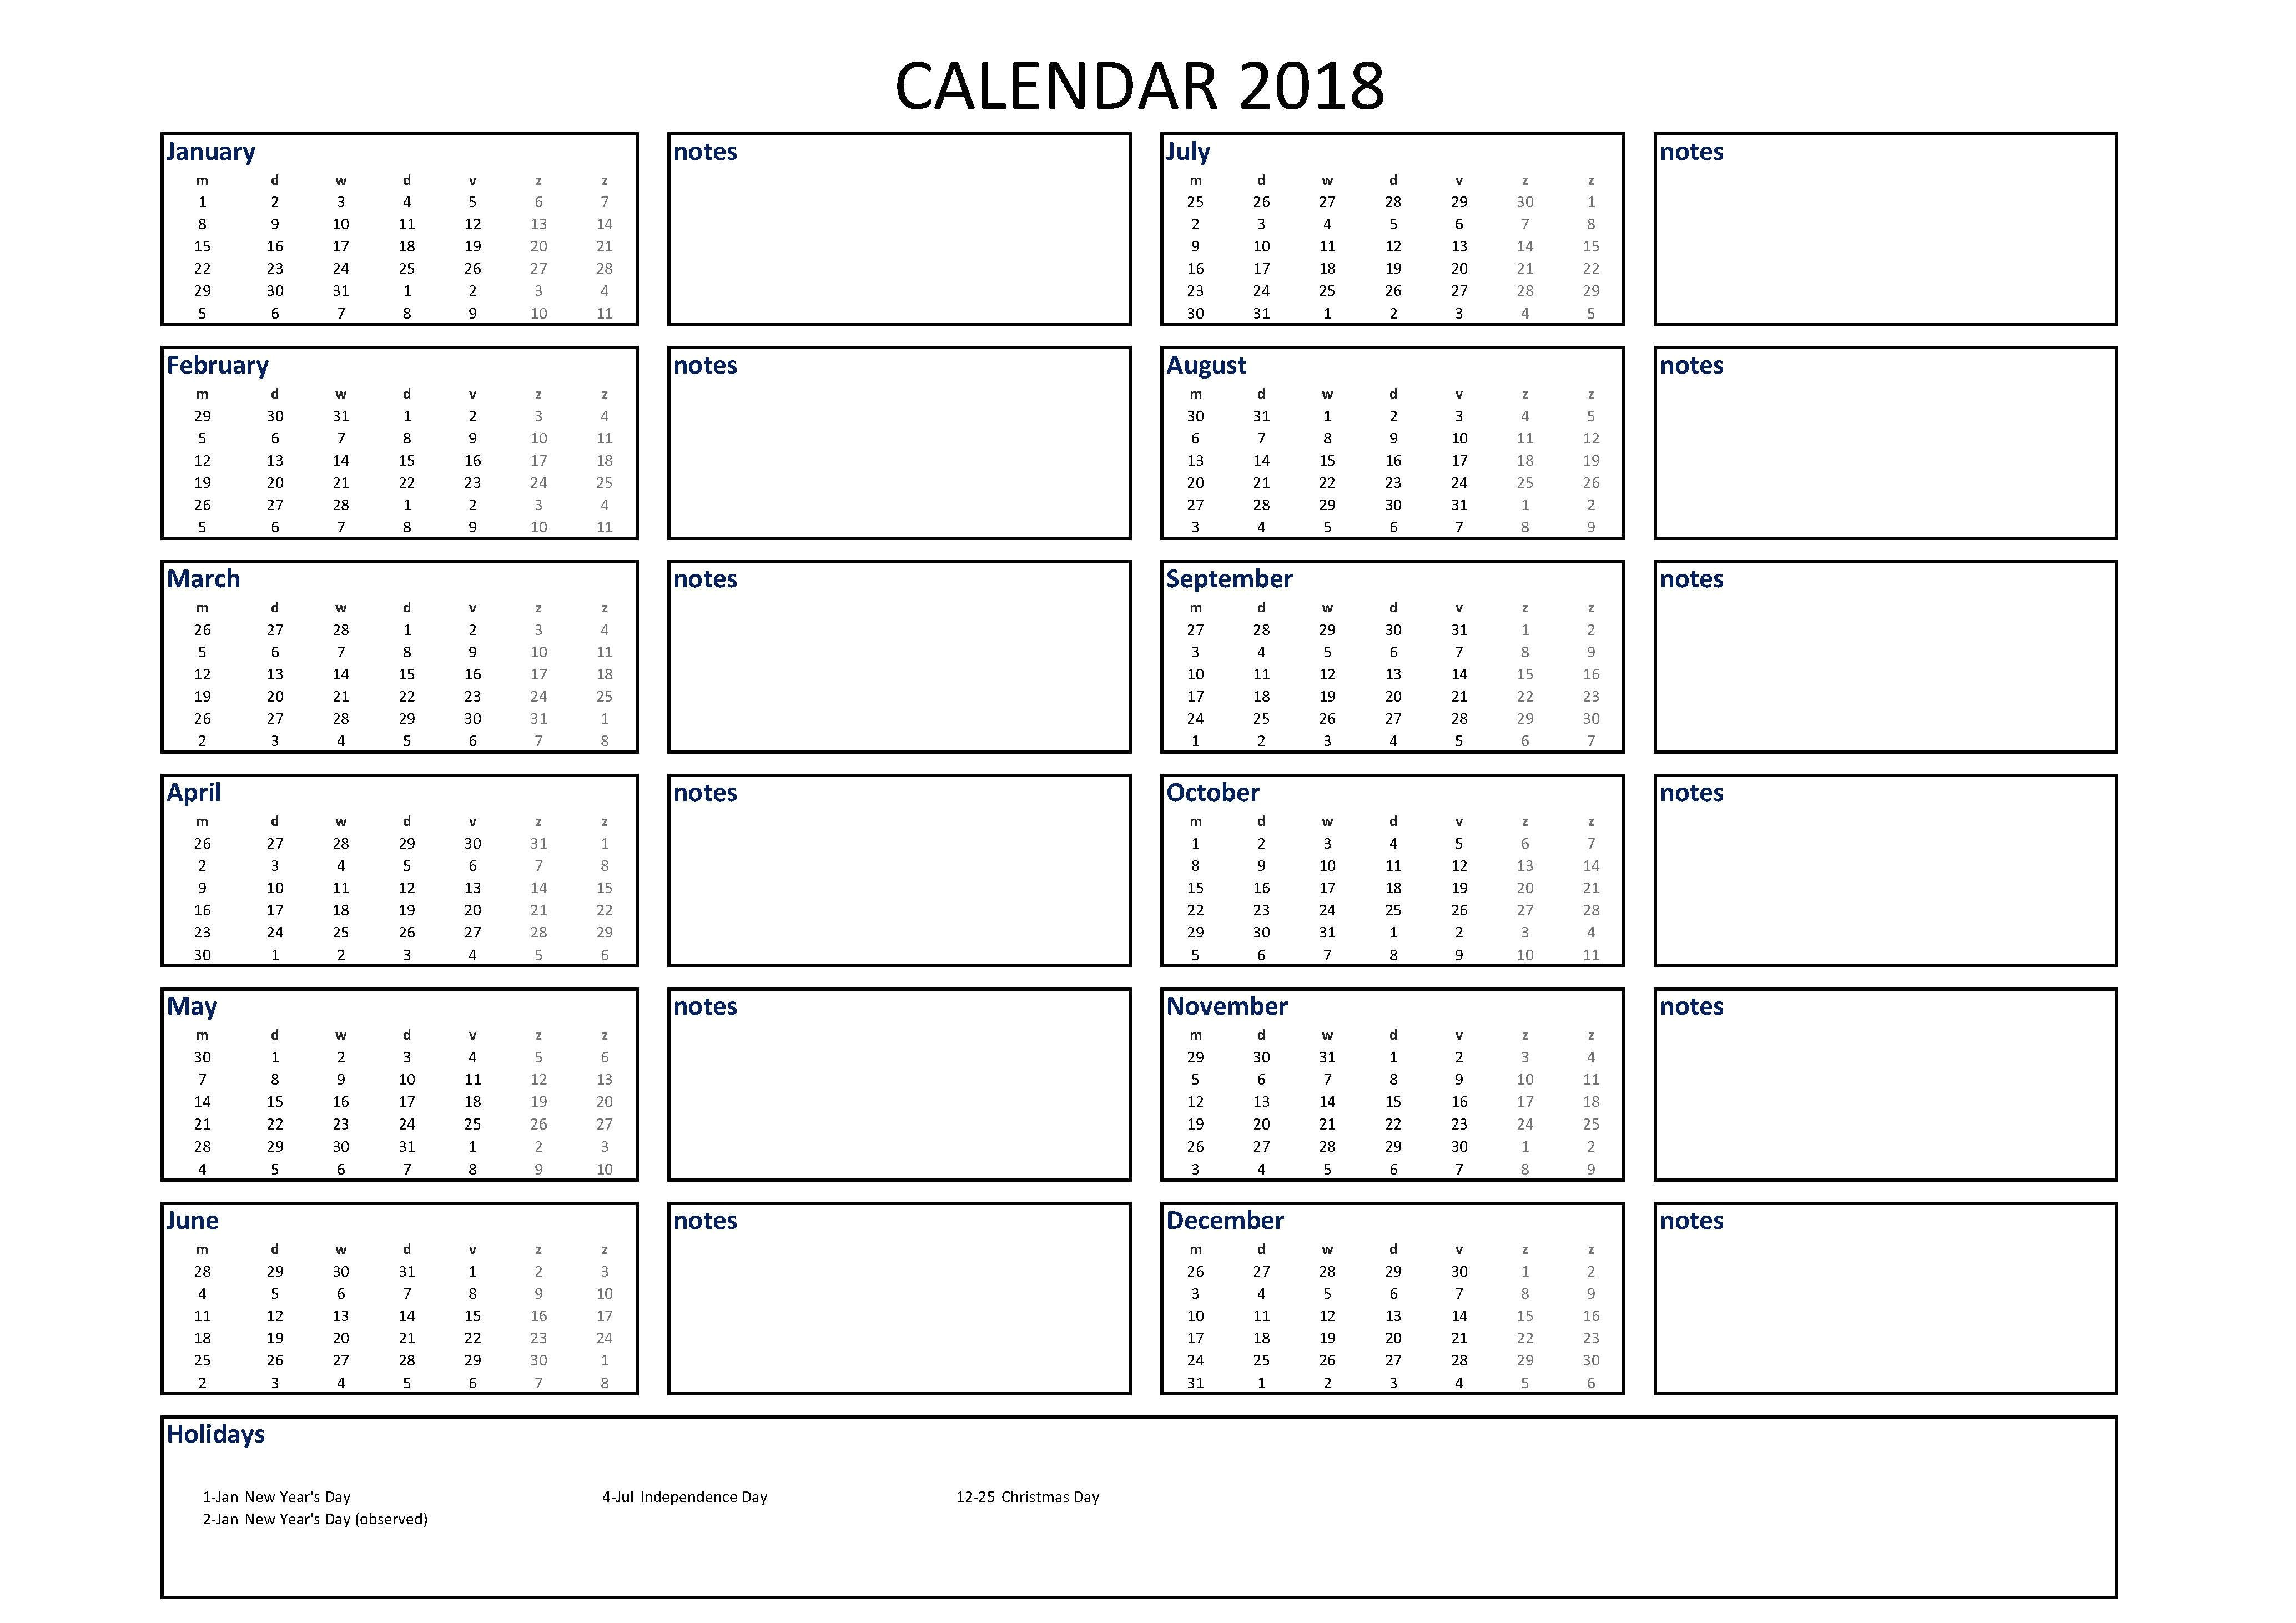 Usable Calendar Template 2018 Calendar Excel A4 Size with Notes Download Our Free